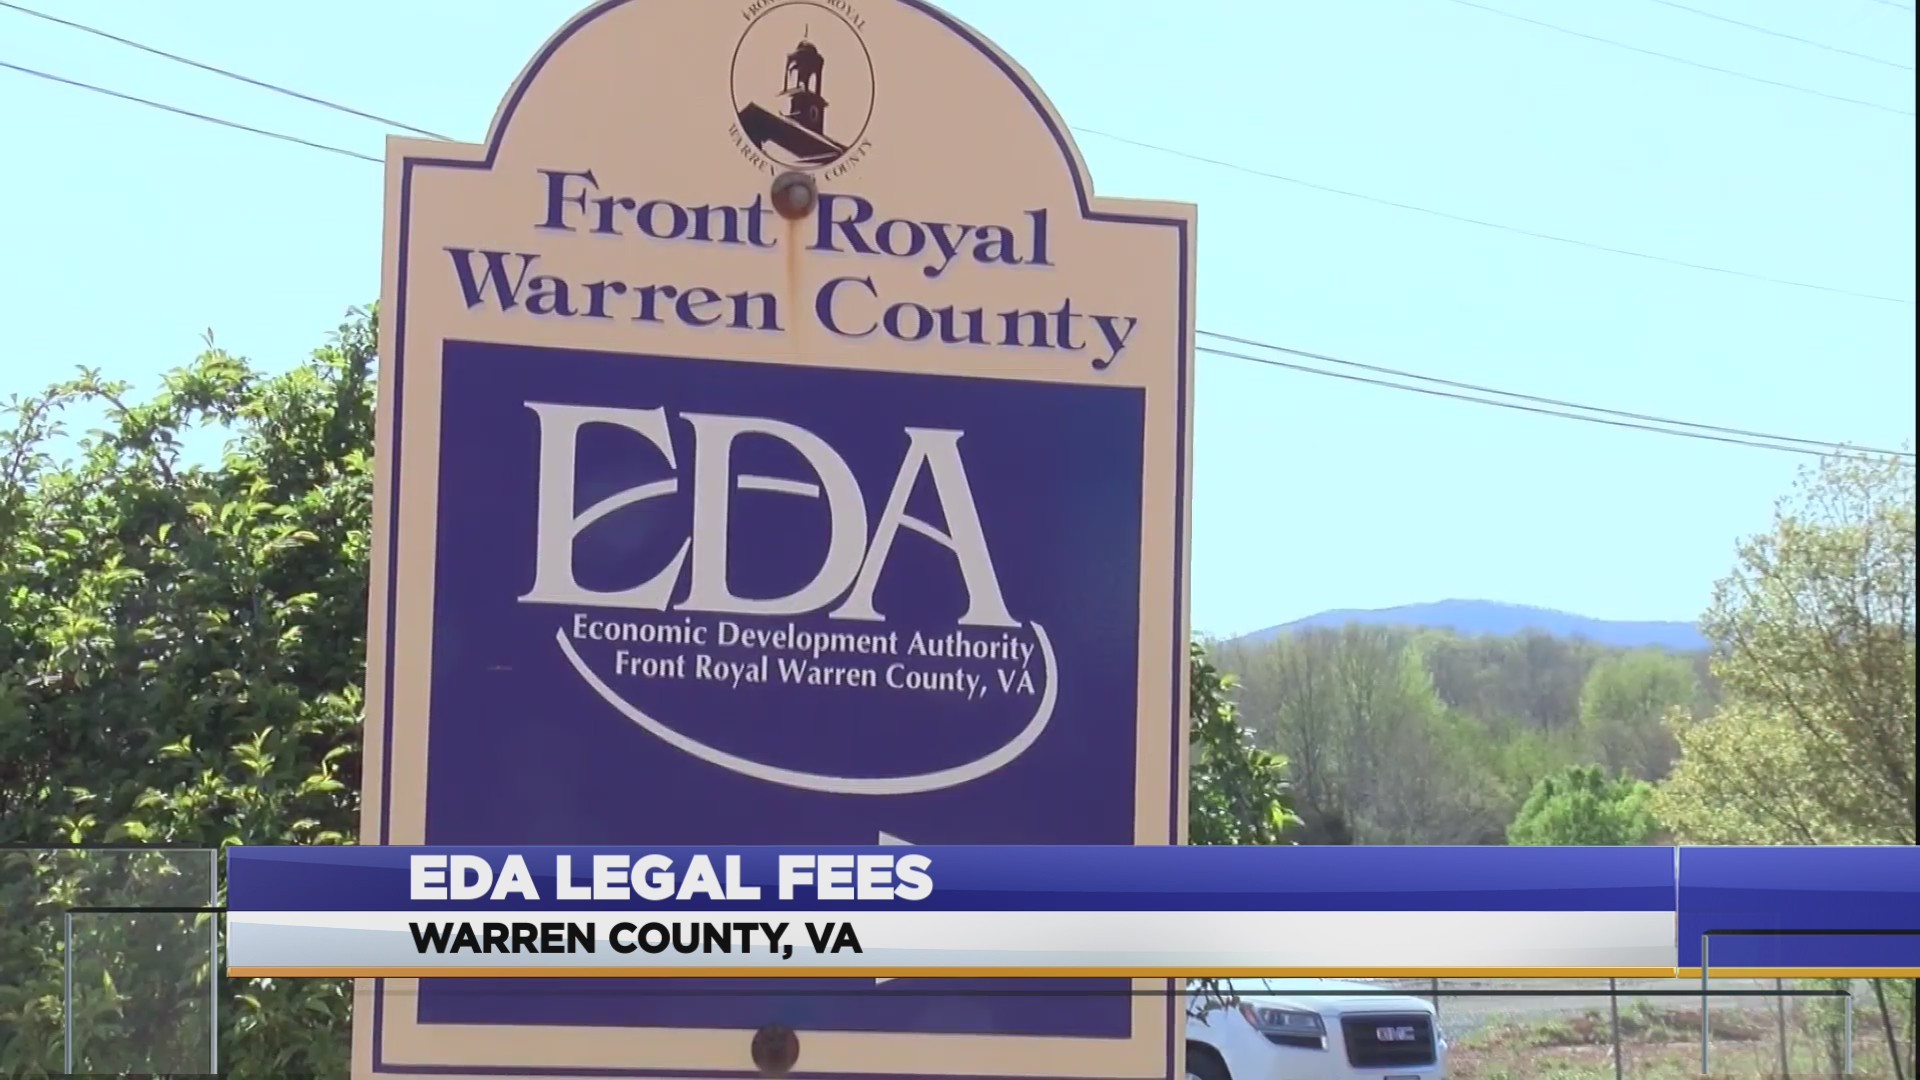 EDA_Legal_Fees_0_20190606021333